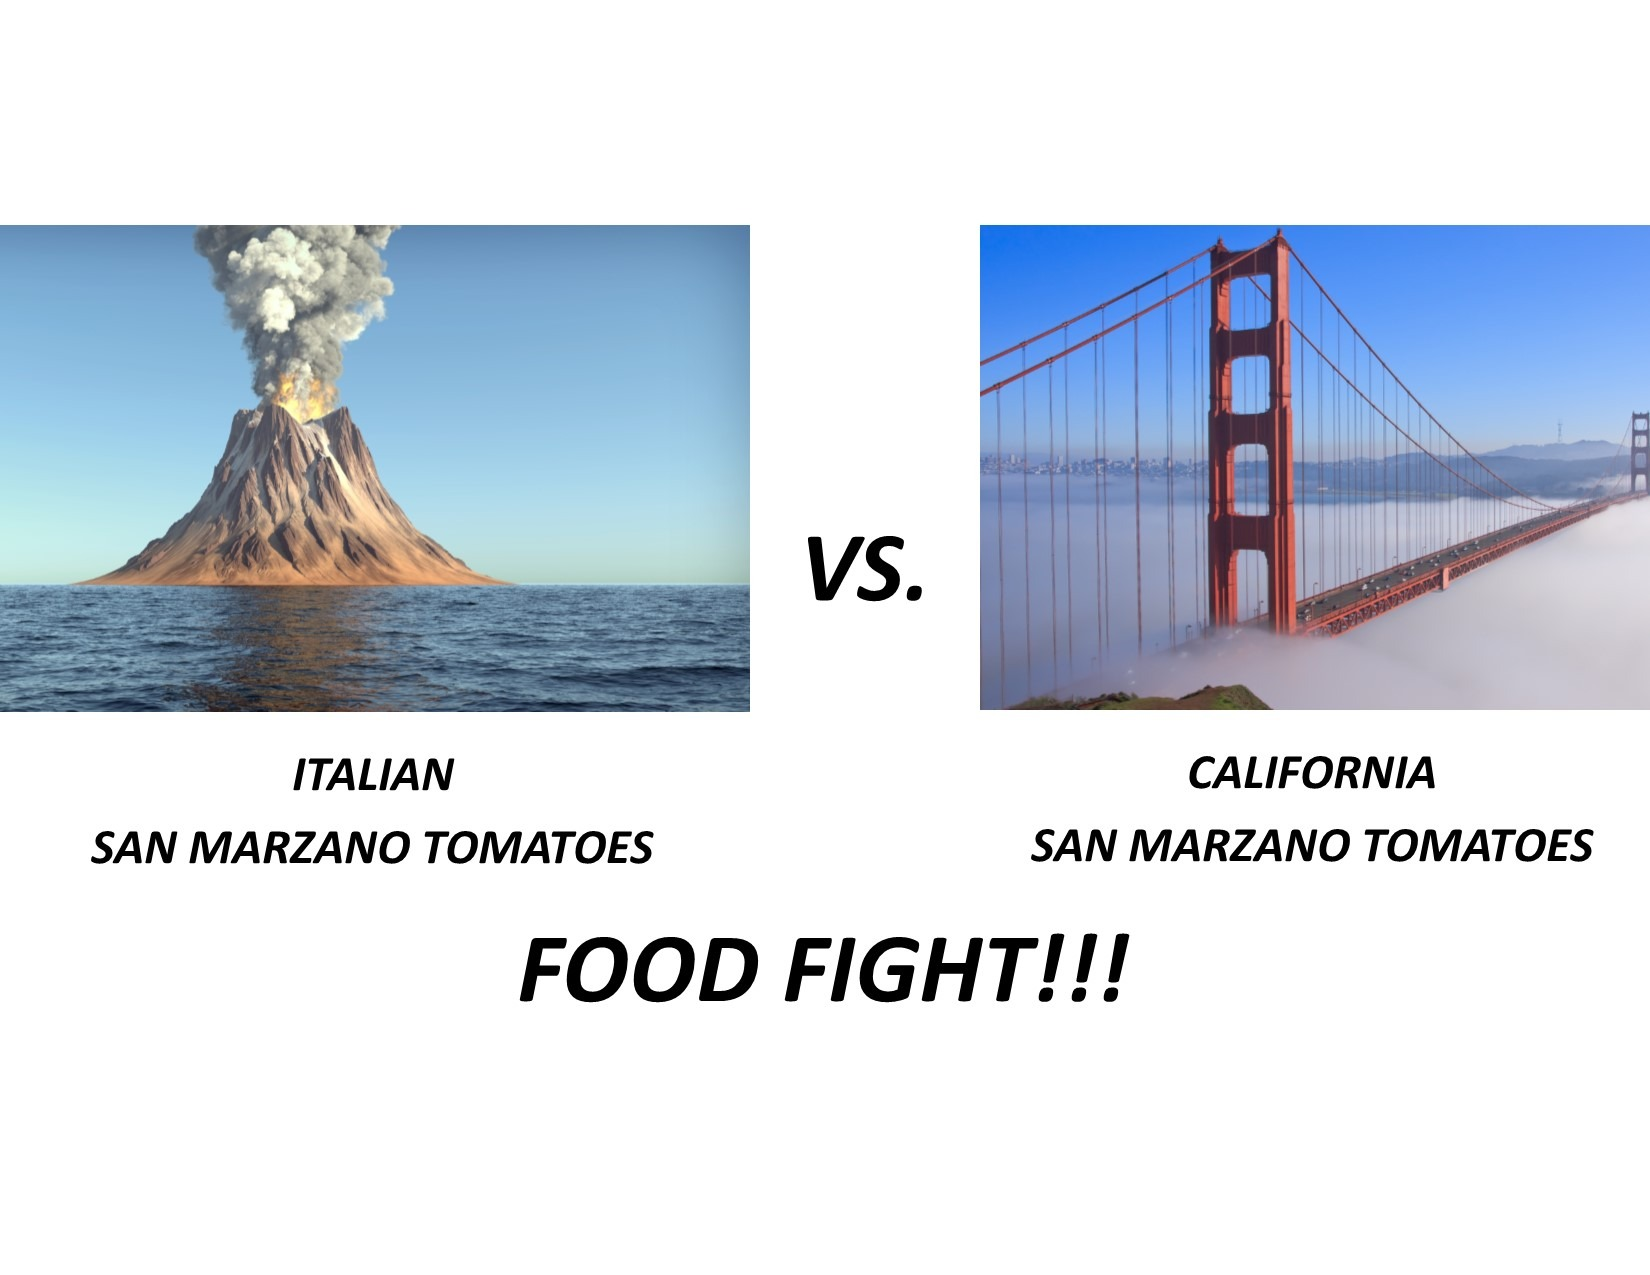 Italian vs California San Marzano